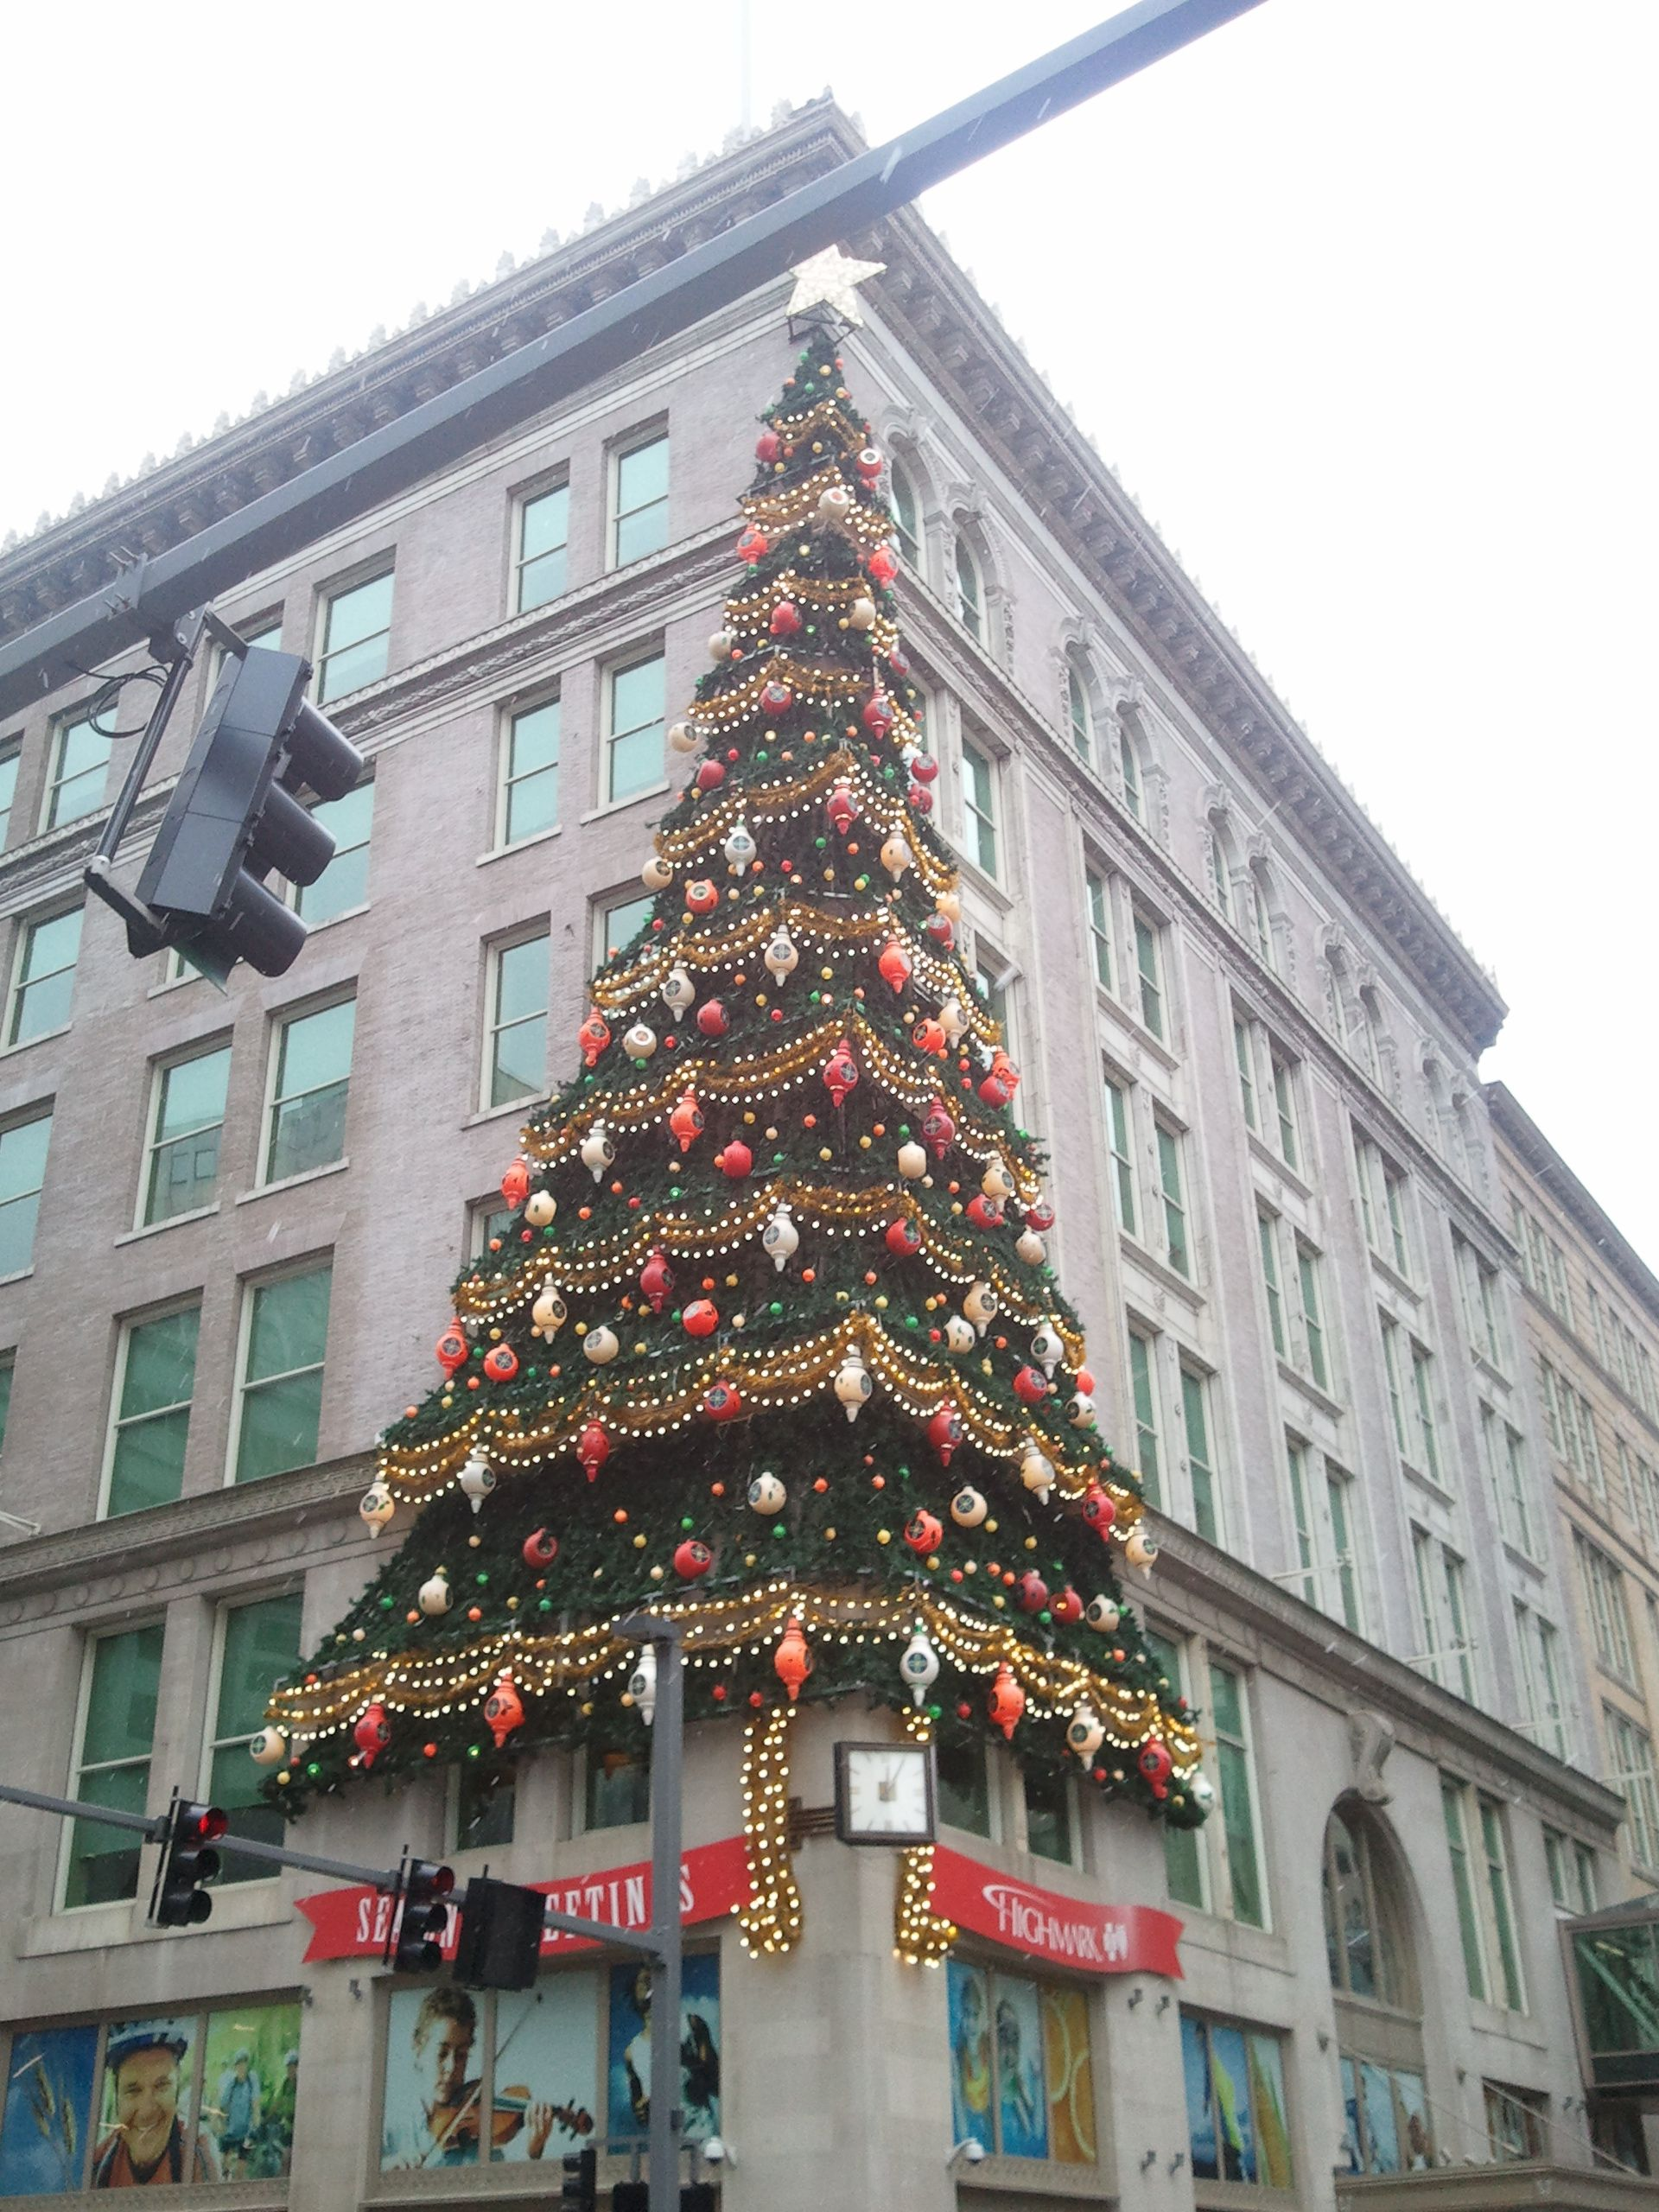 Joseph Horne and Company Christmas Tree...a Pittsburgh